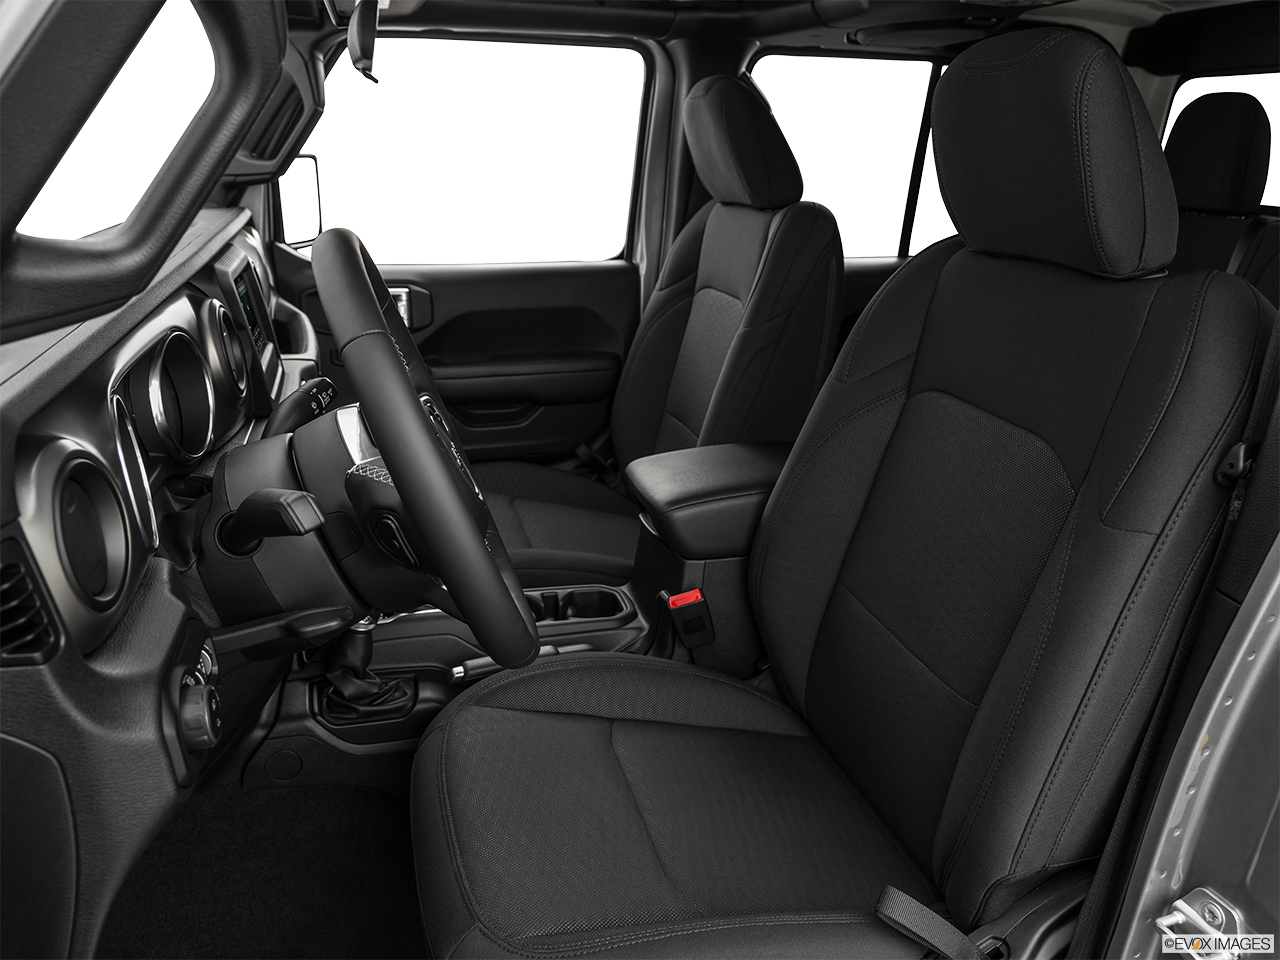 2020 Jeep Gladiator Sport S Front seats from Drivers Side.